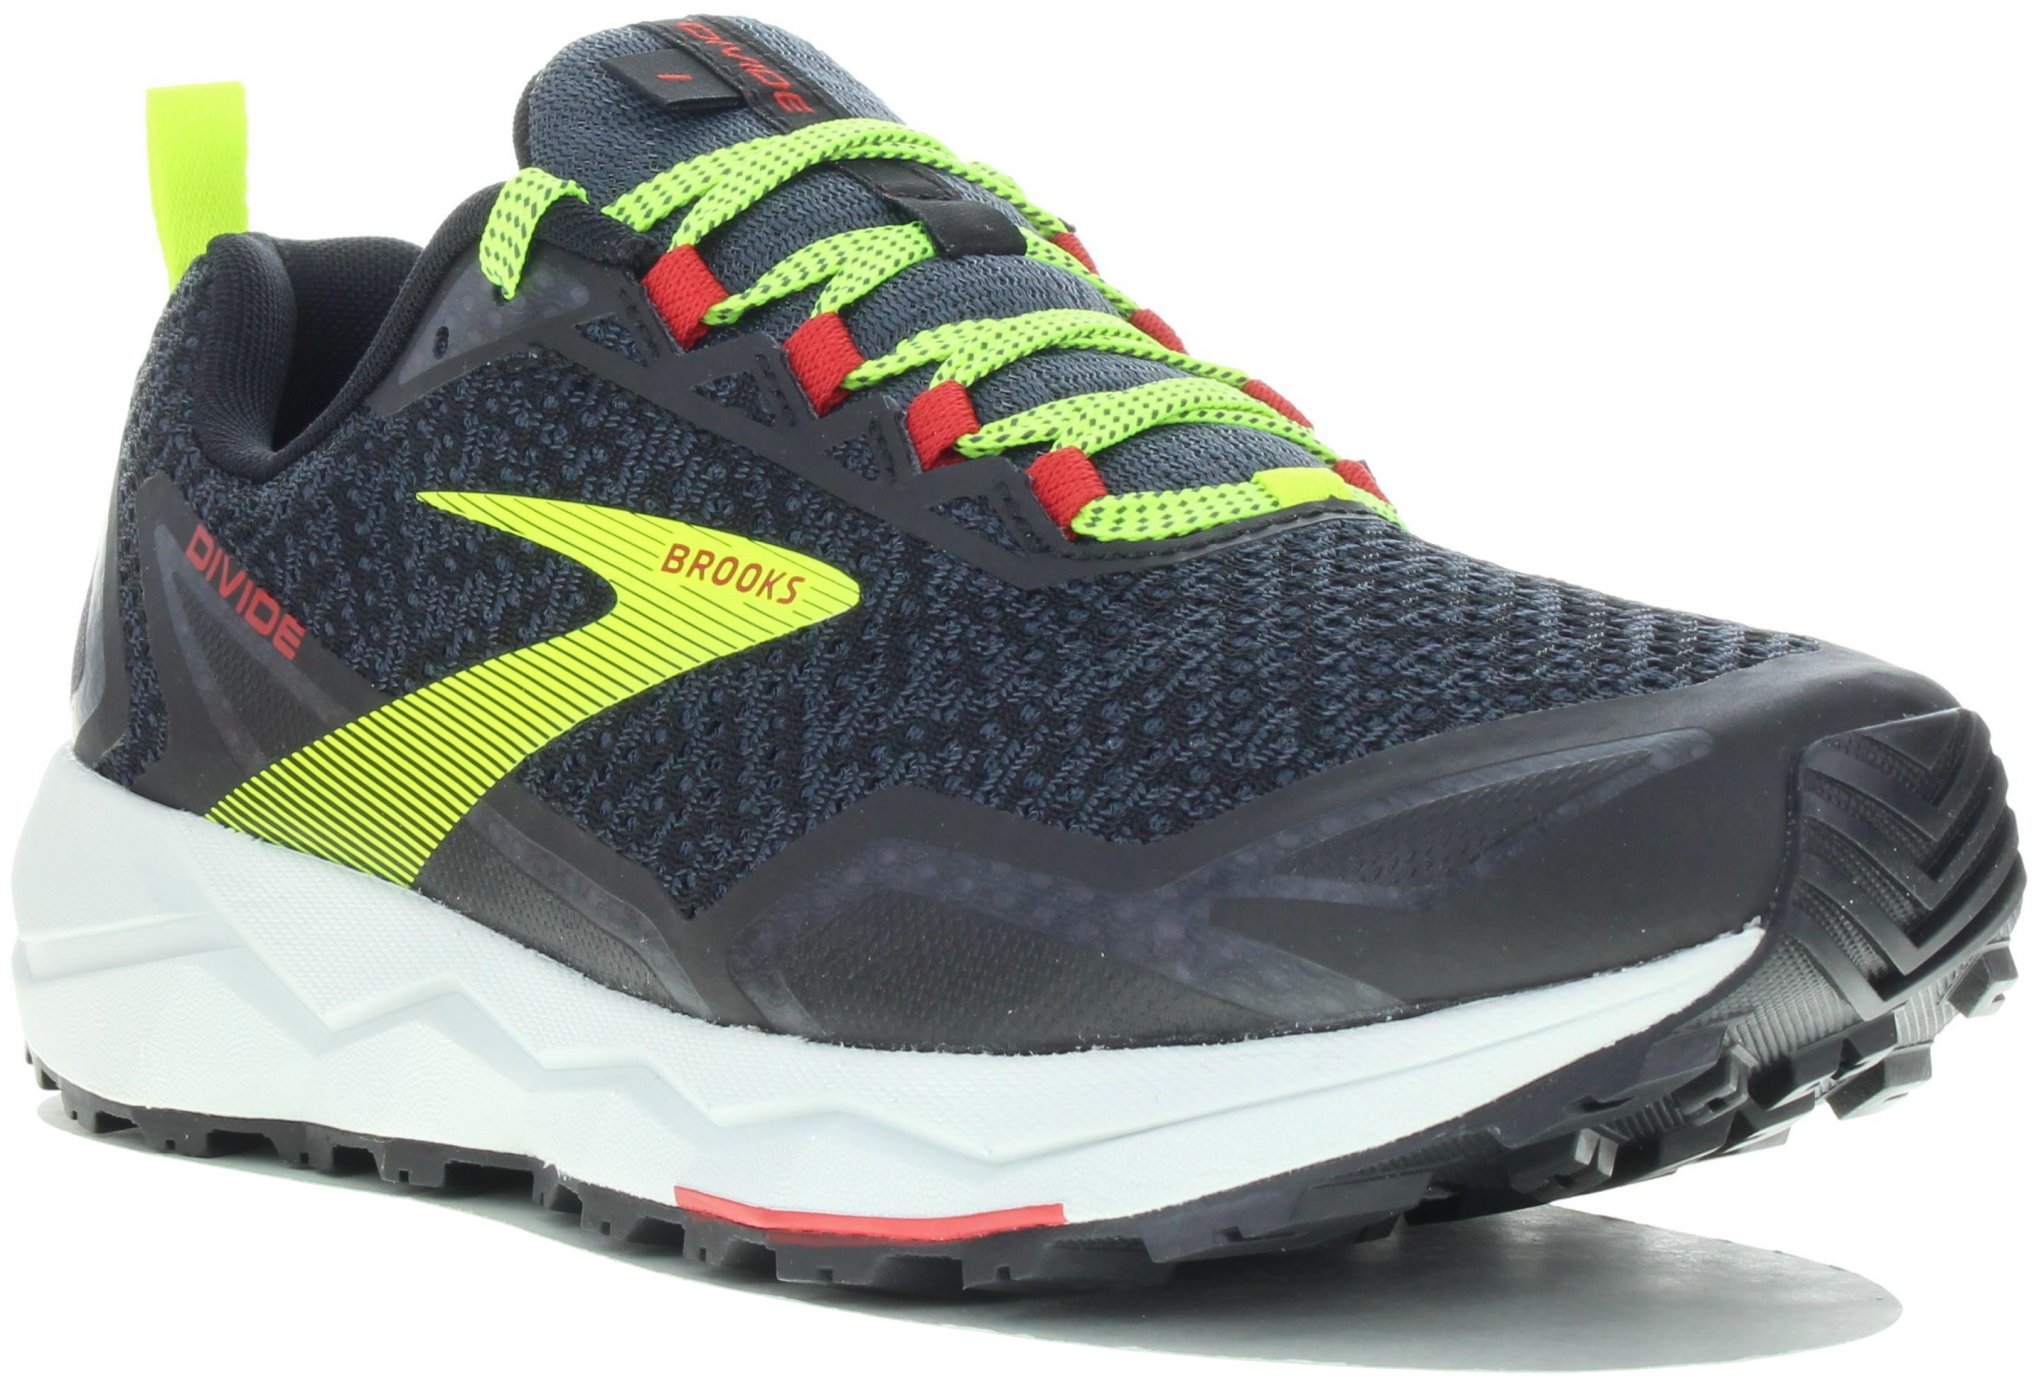 Brooks Divide Chaussures homme